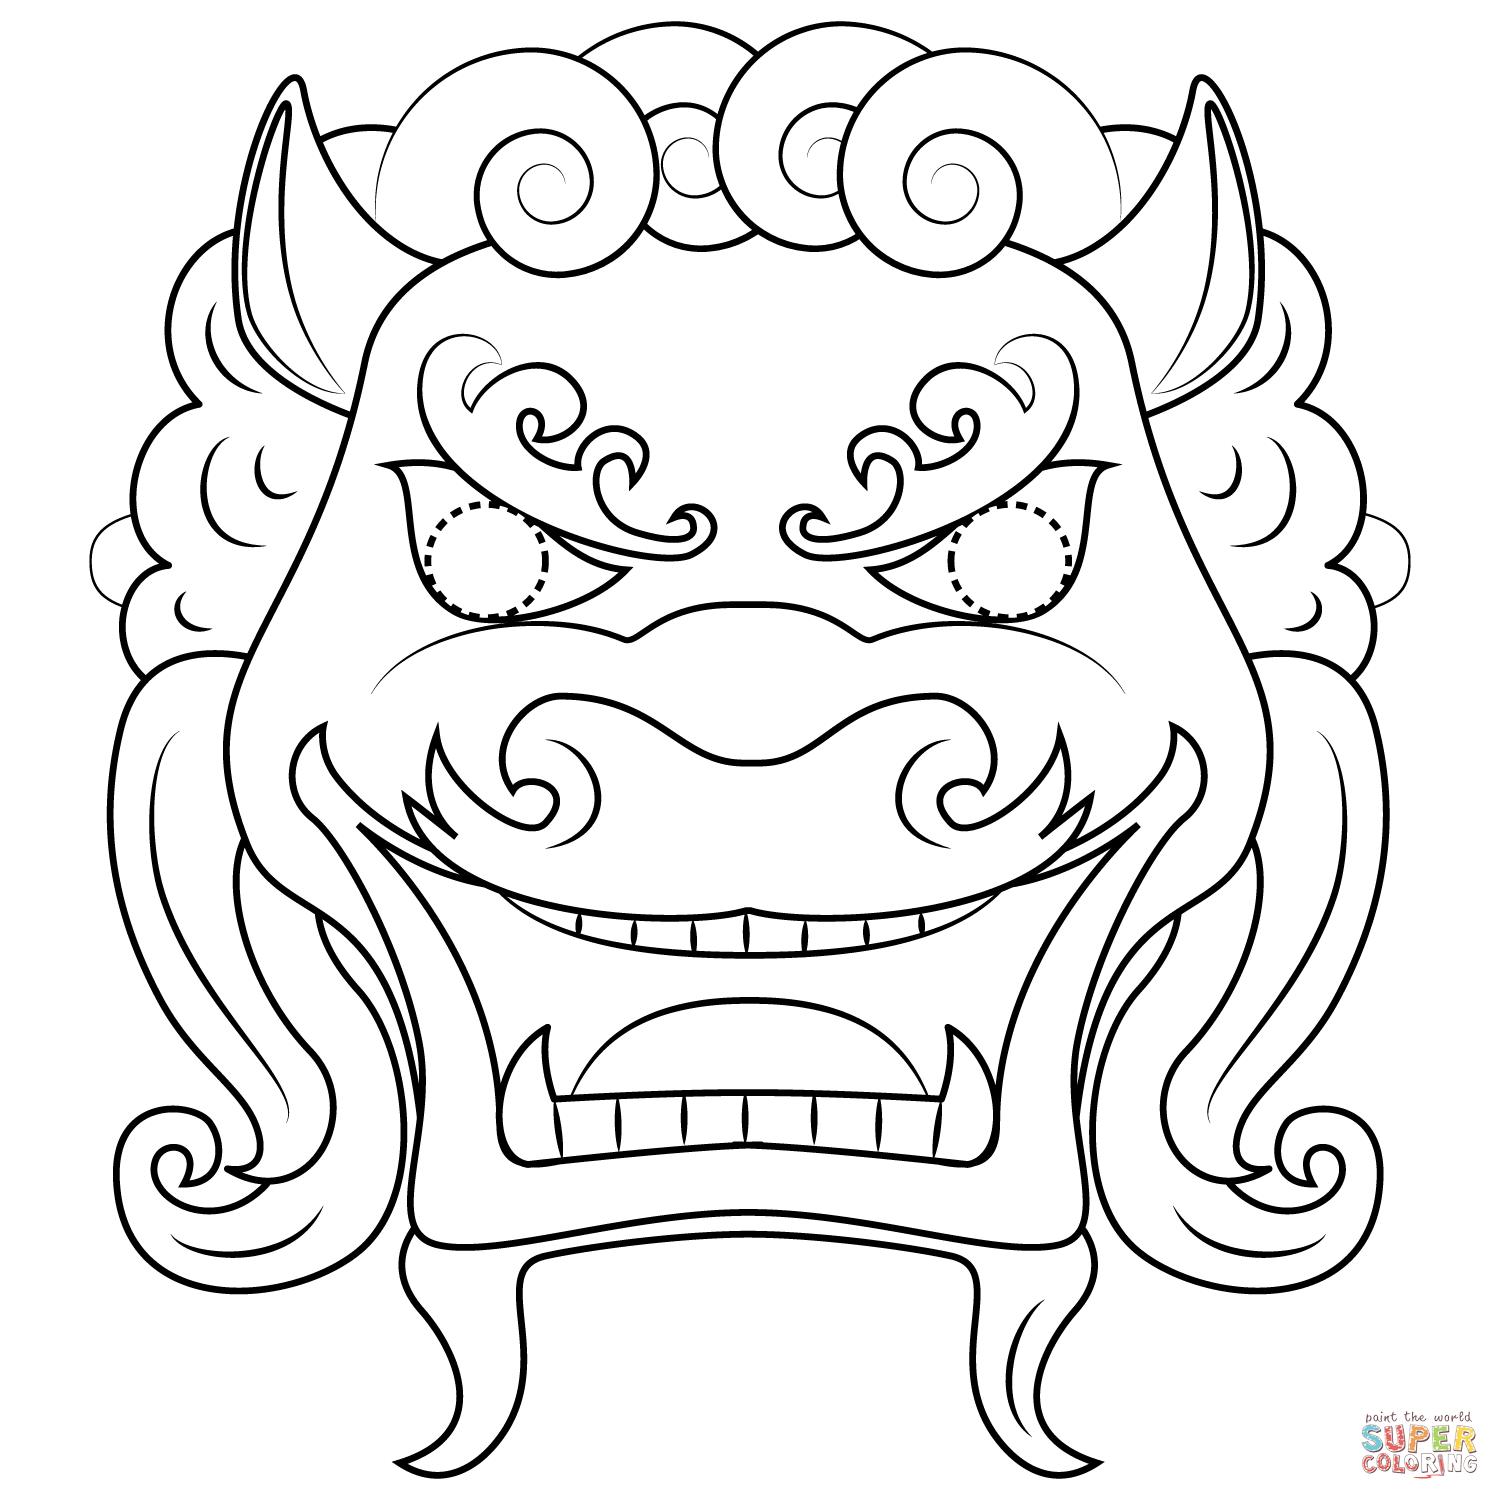 lion mask coloring page printable lion mask coloring page woo jr kids activities mask lion coloring page